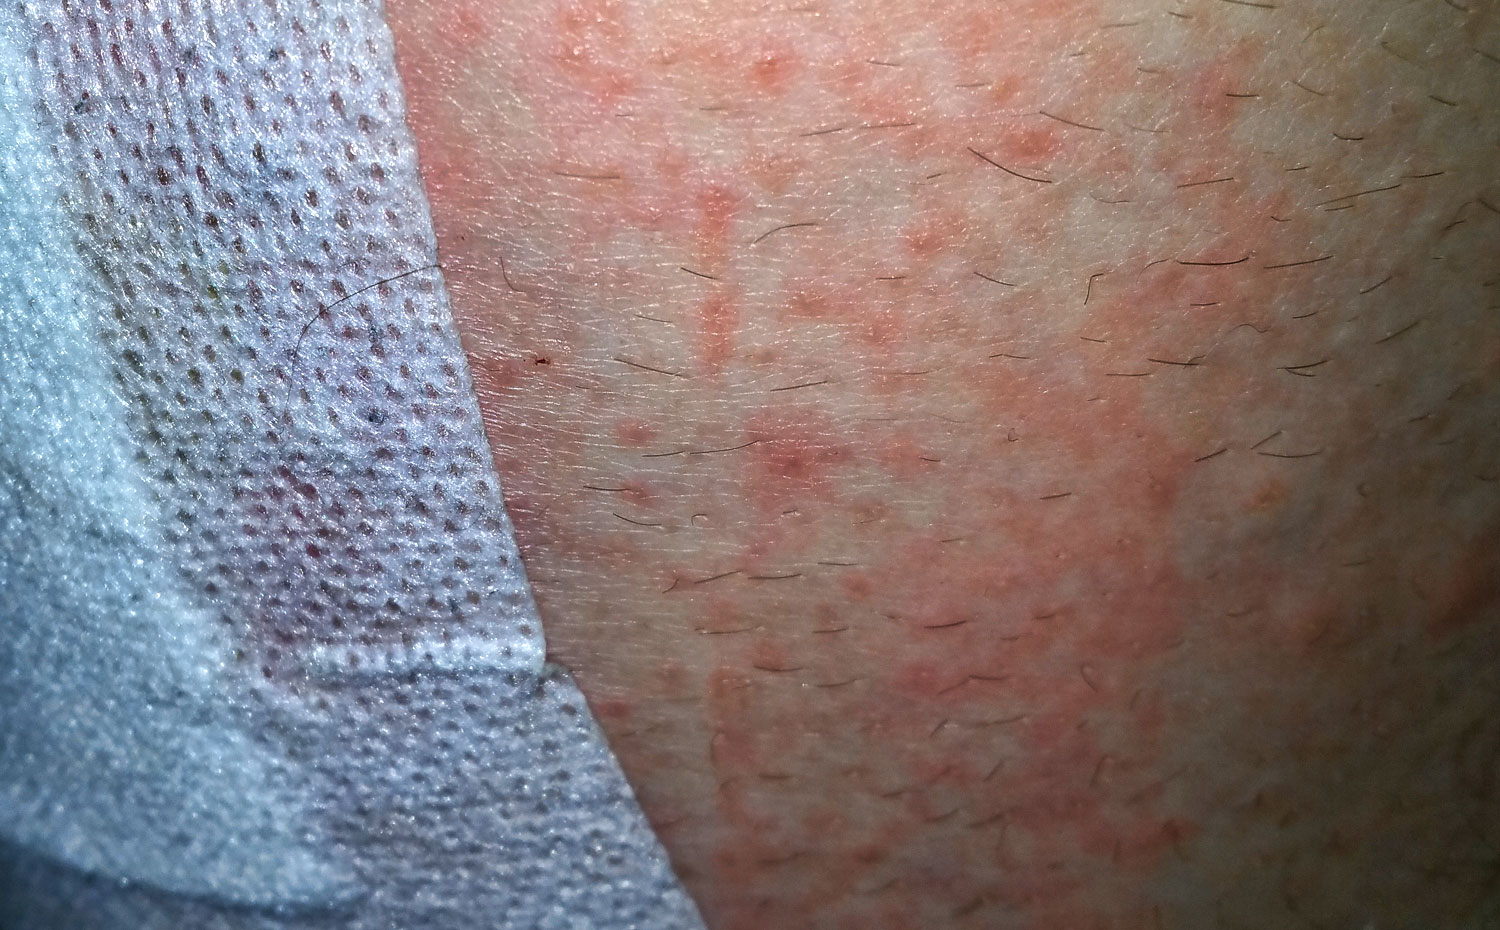 Sticking Plaster Allergy Allergies And Health